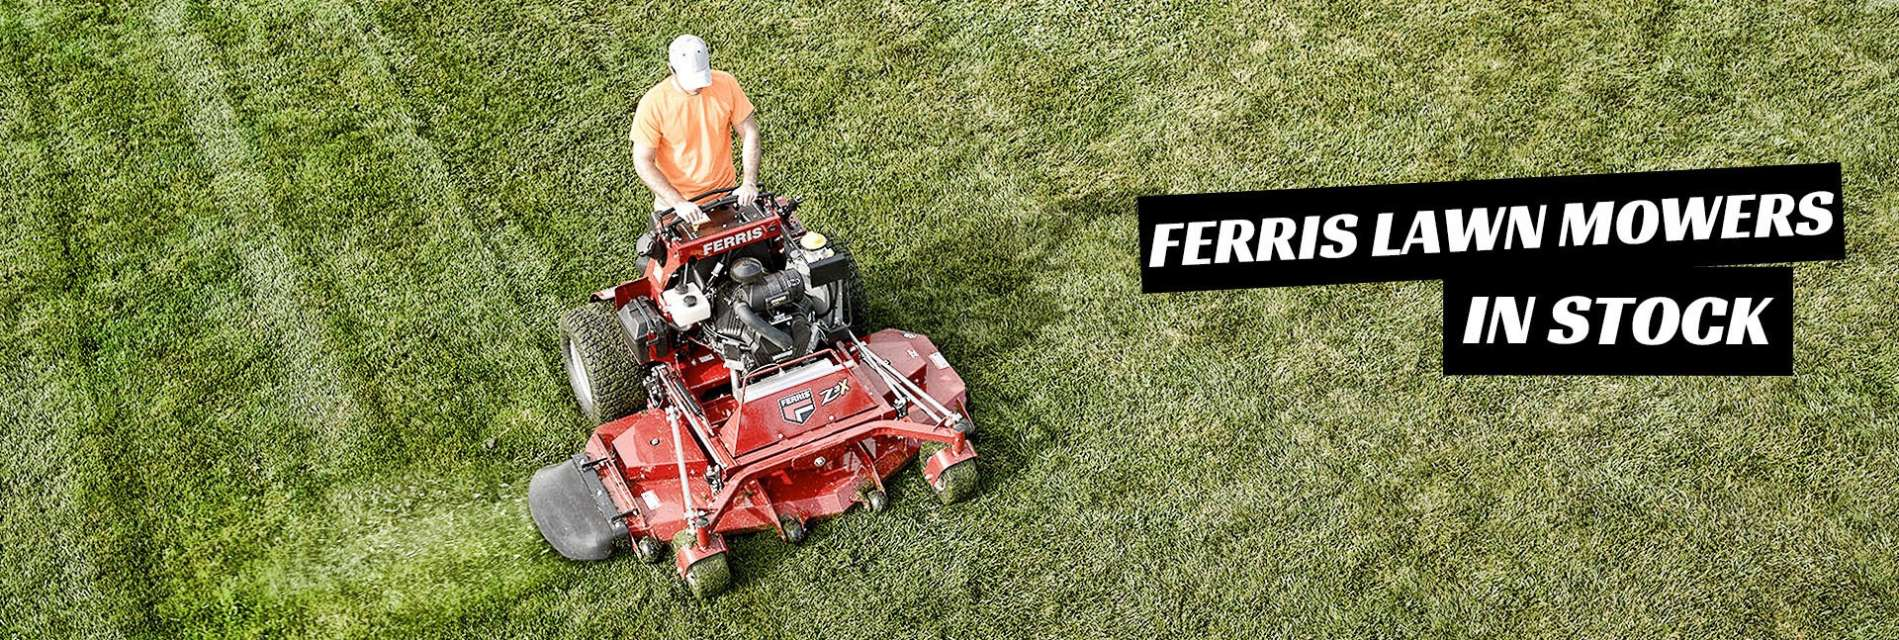 New Ferris Lawn Mowers For Sale at Benny's Power in Chester, VT